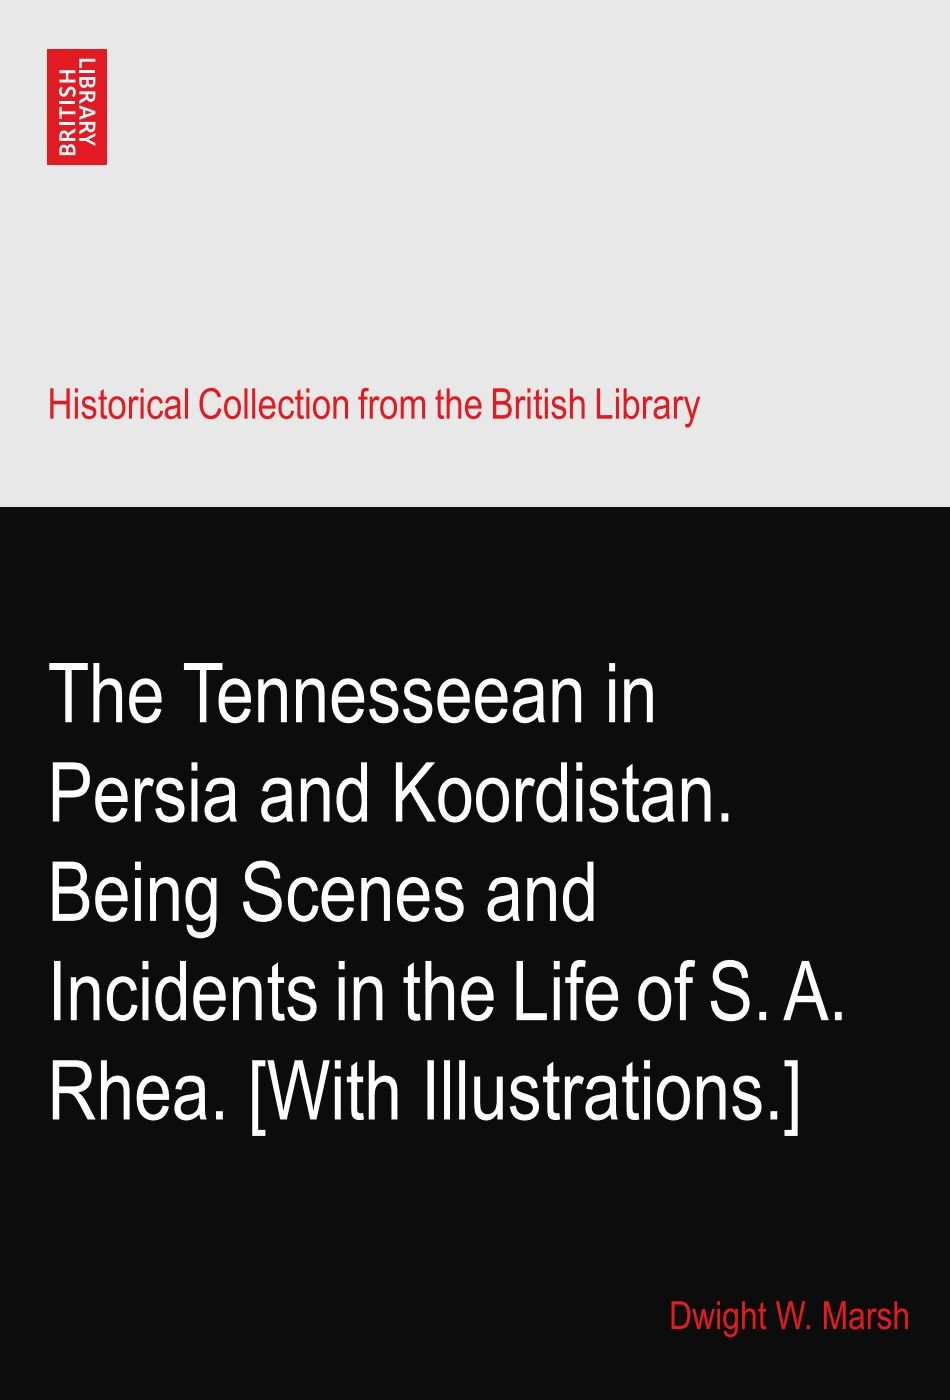 Download The Tennesseean in Persia and Koordistan. Being Scenes and Incidents in the Life of S. A. Rhea. [With Illustrations.] PDF